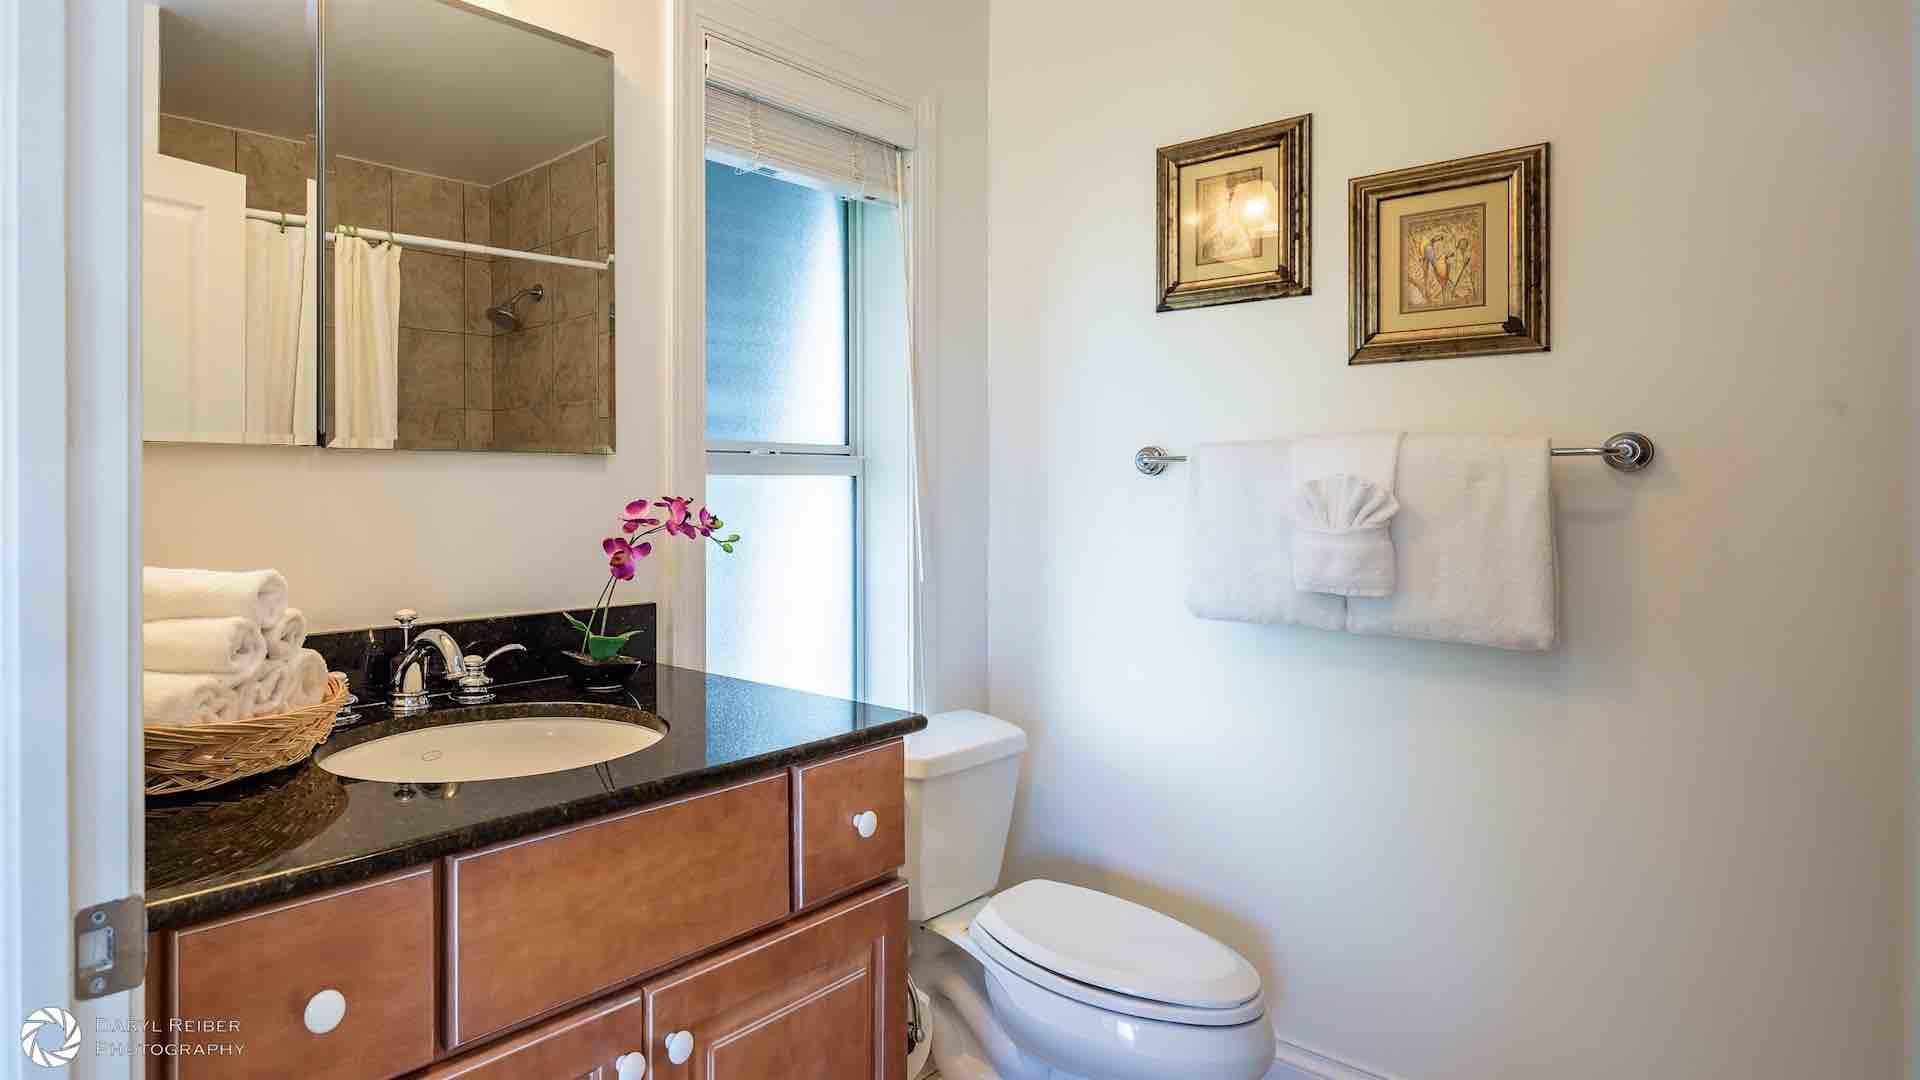 The third bedroom also has an en suite bathroom, with a shower and tub combo...